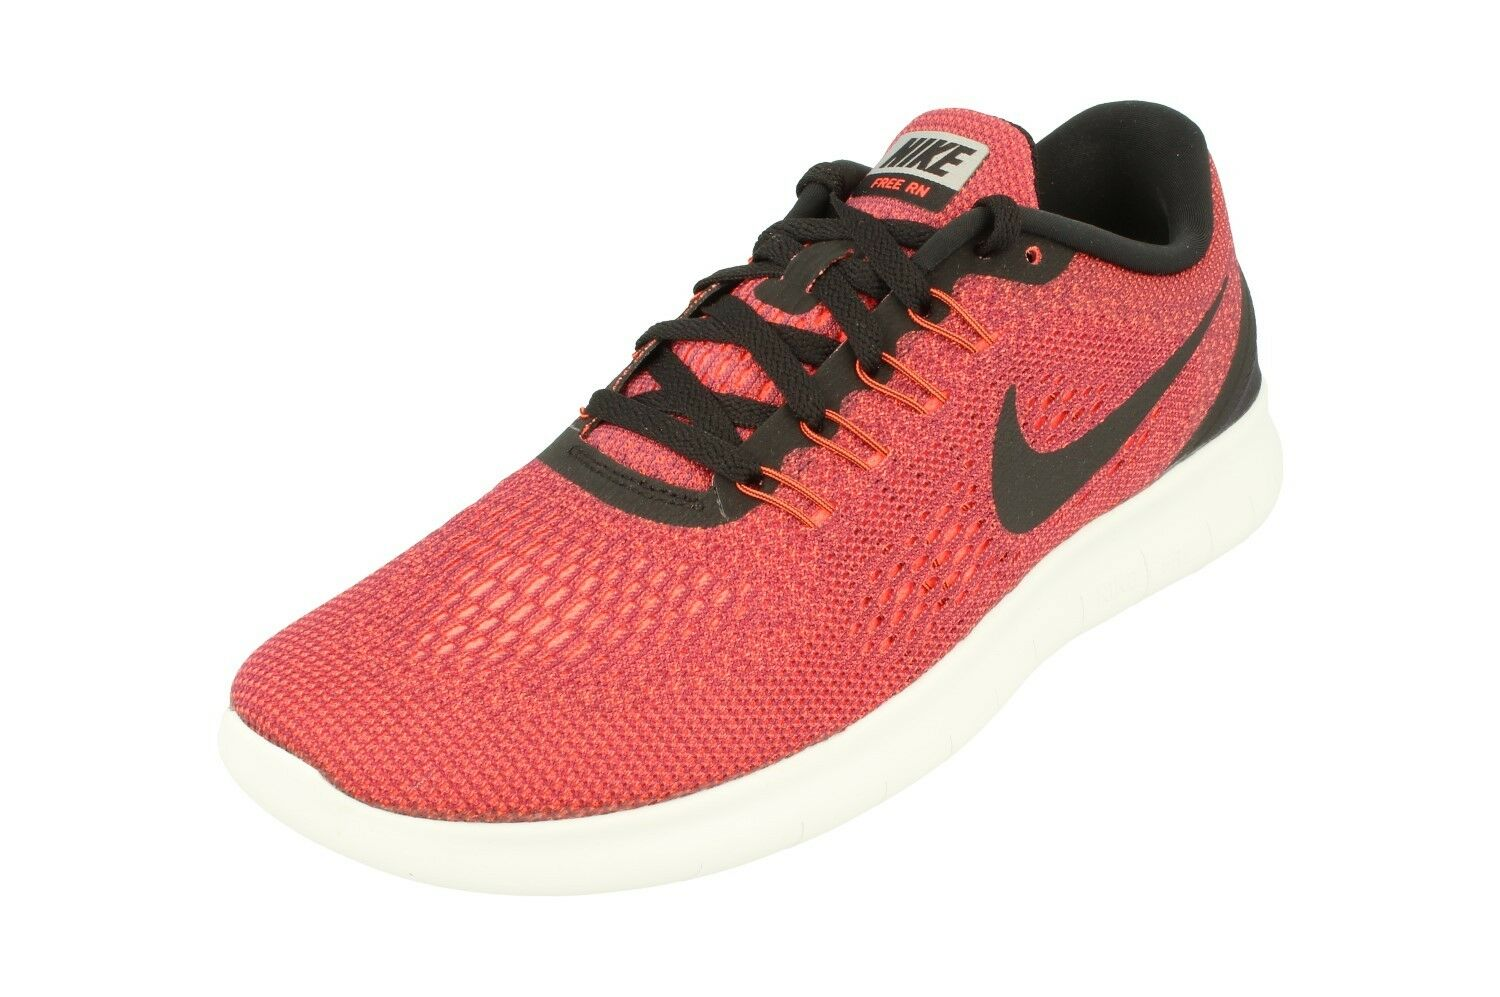 Cheap women's shoes women's shoes Nike Free RN Mens Running Trainers 831508 Sneakers Shoes 803